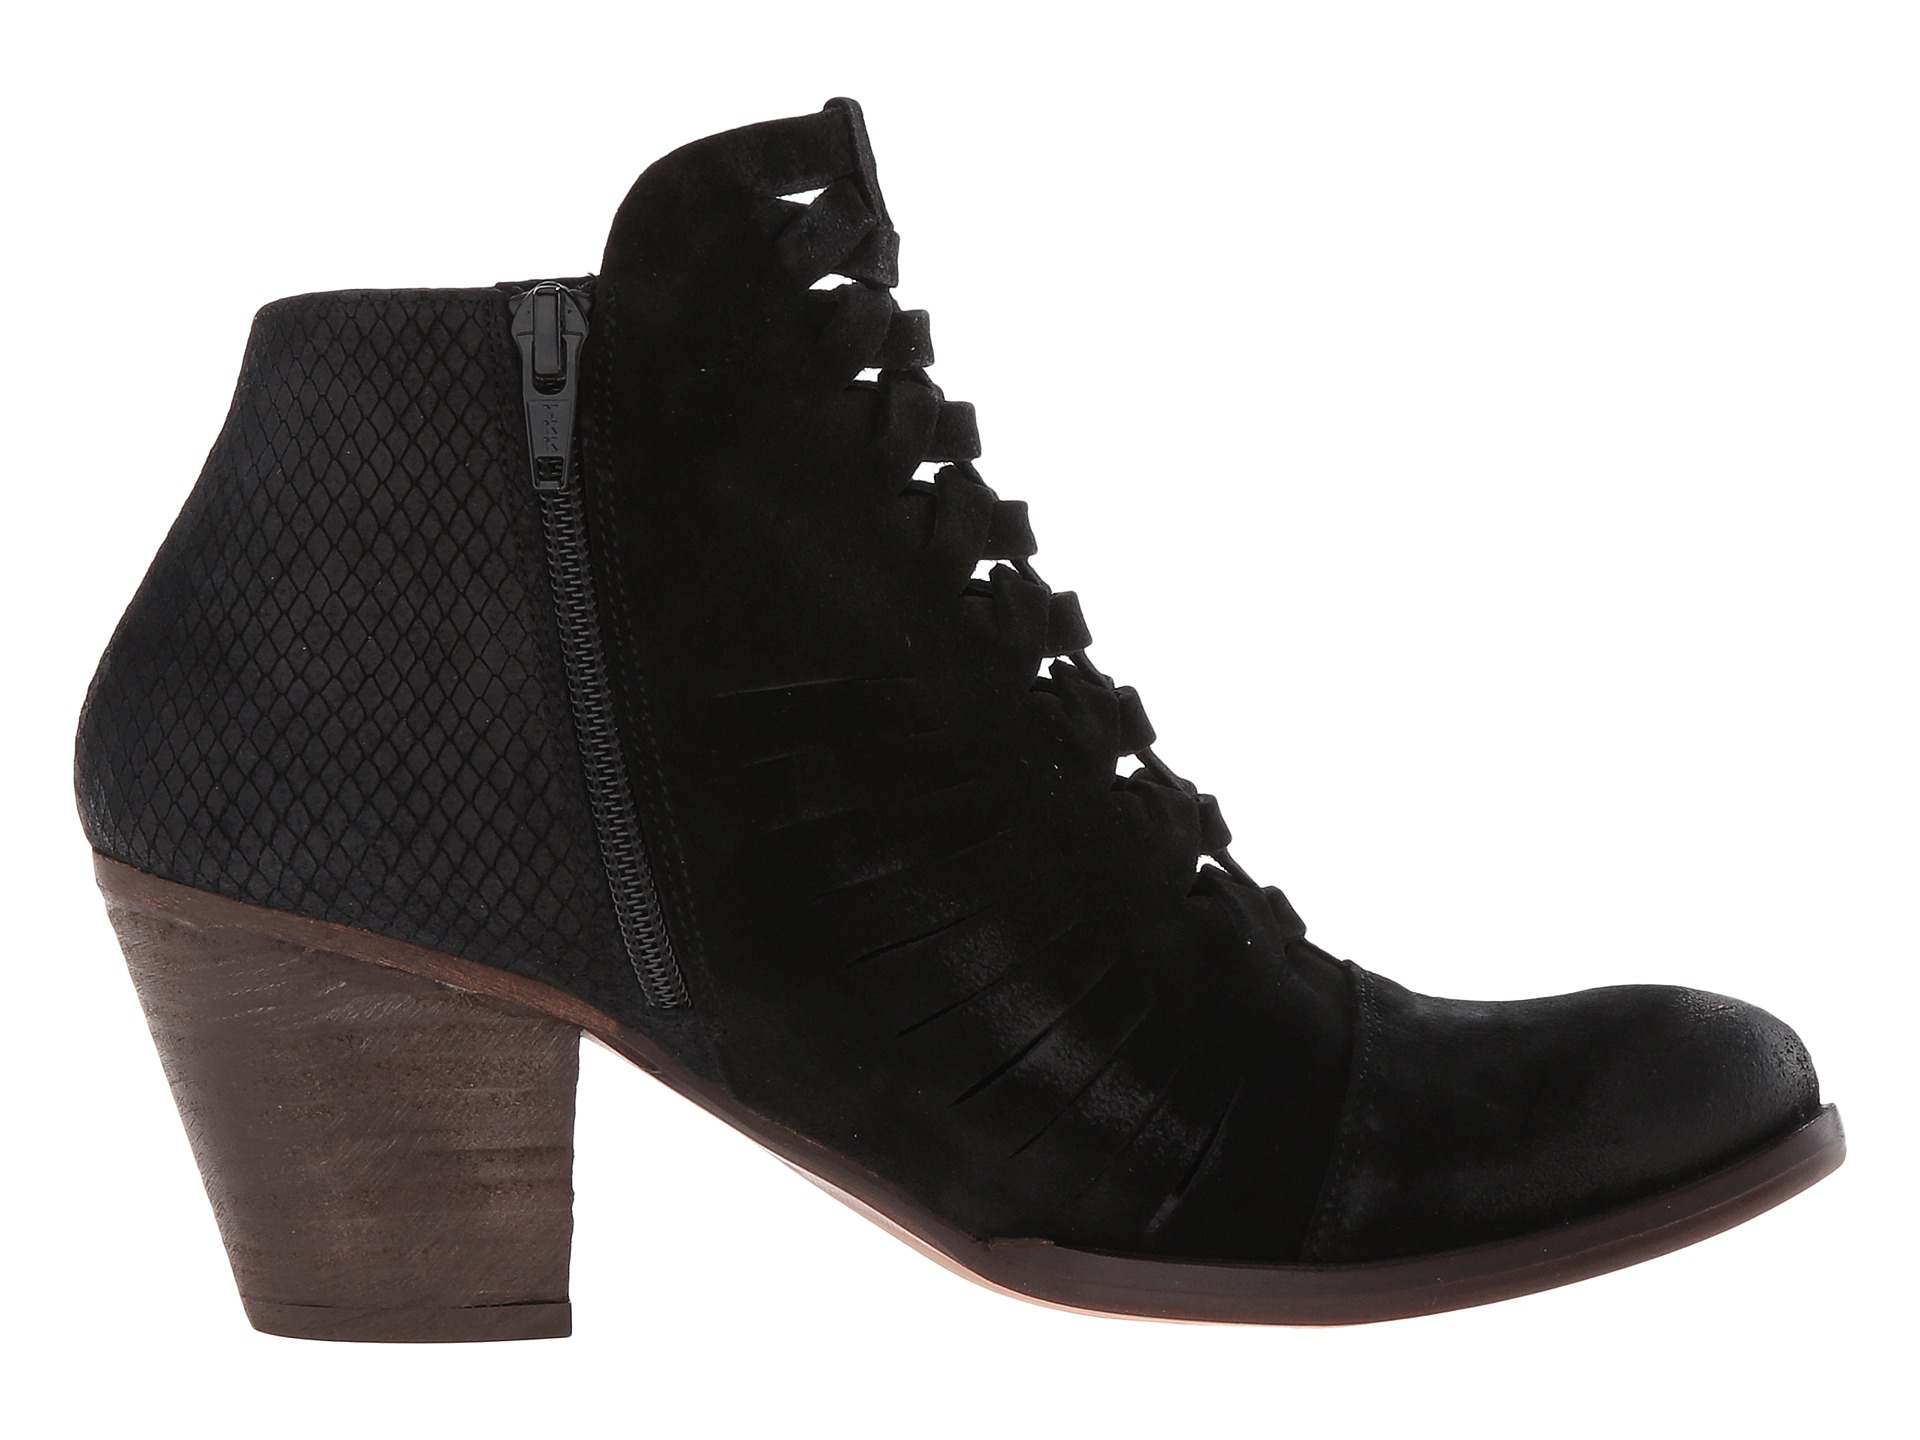 free loveland ankle boot zappos free shipping